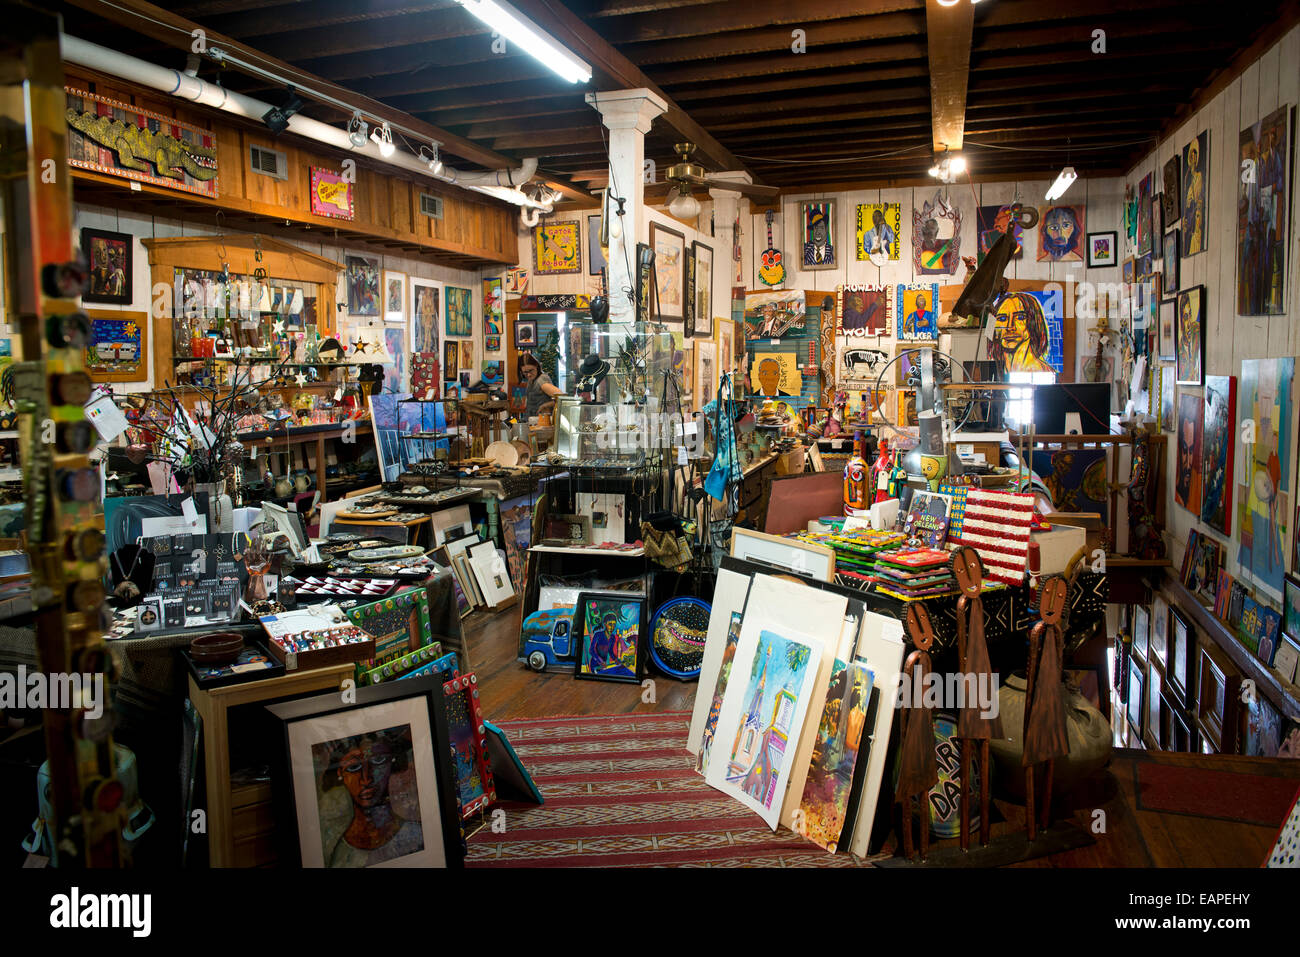 Interior of the Attic Gallery. Vicksburg Mississippi - Stock Image